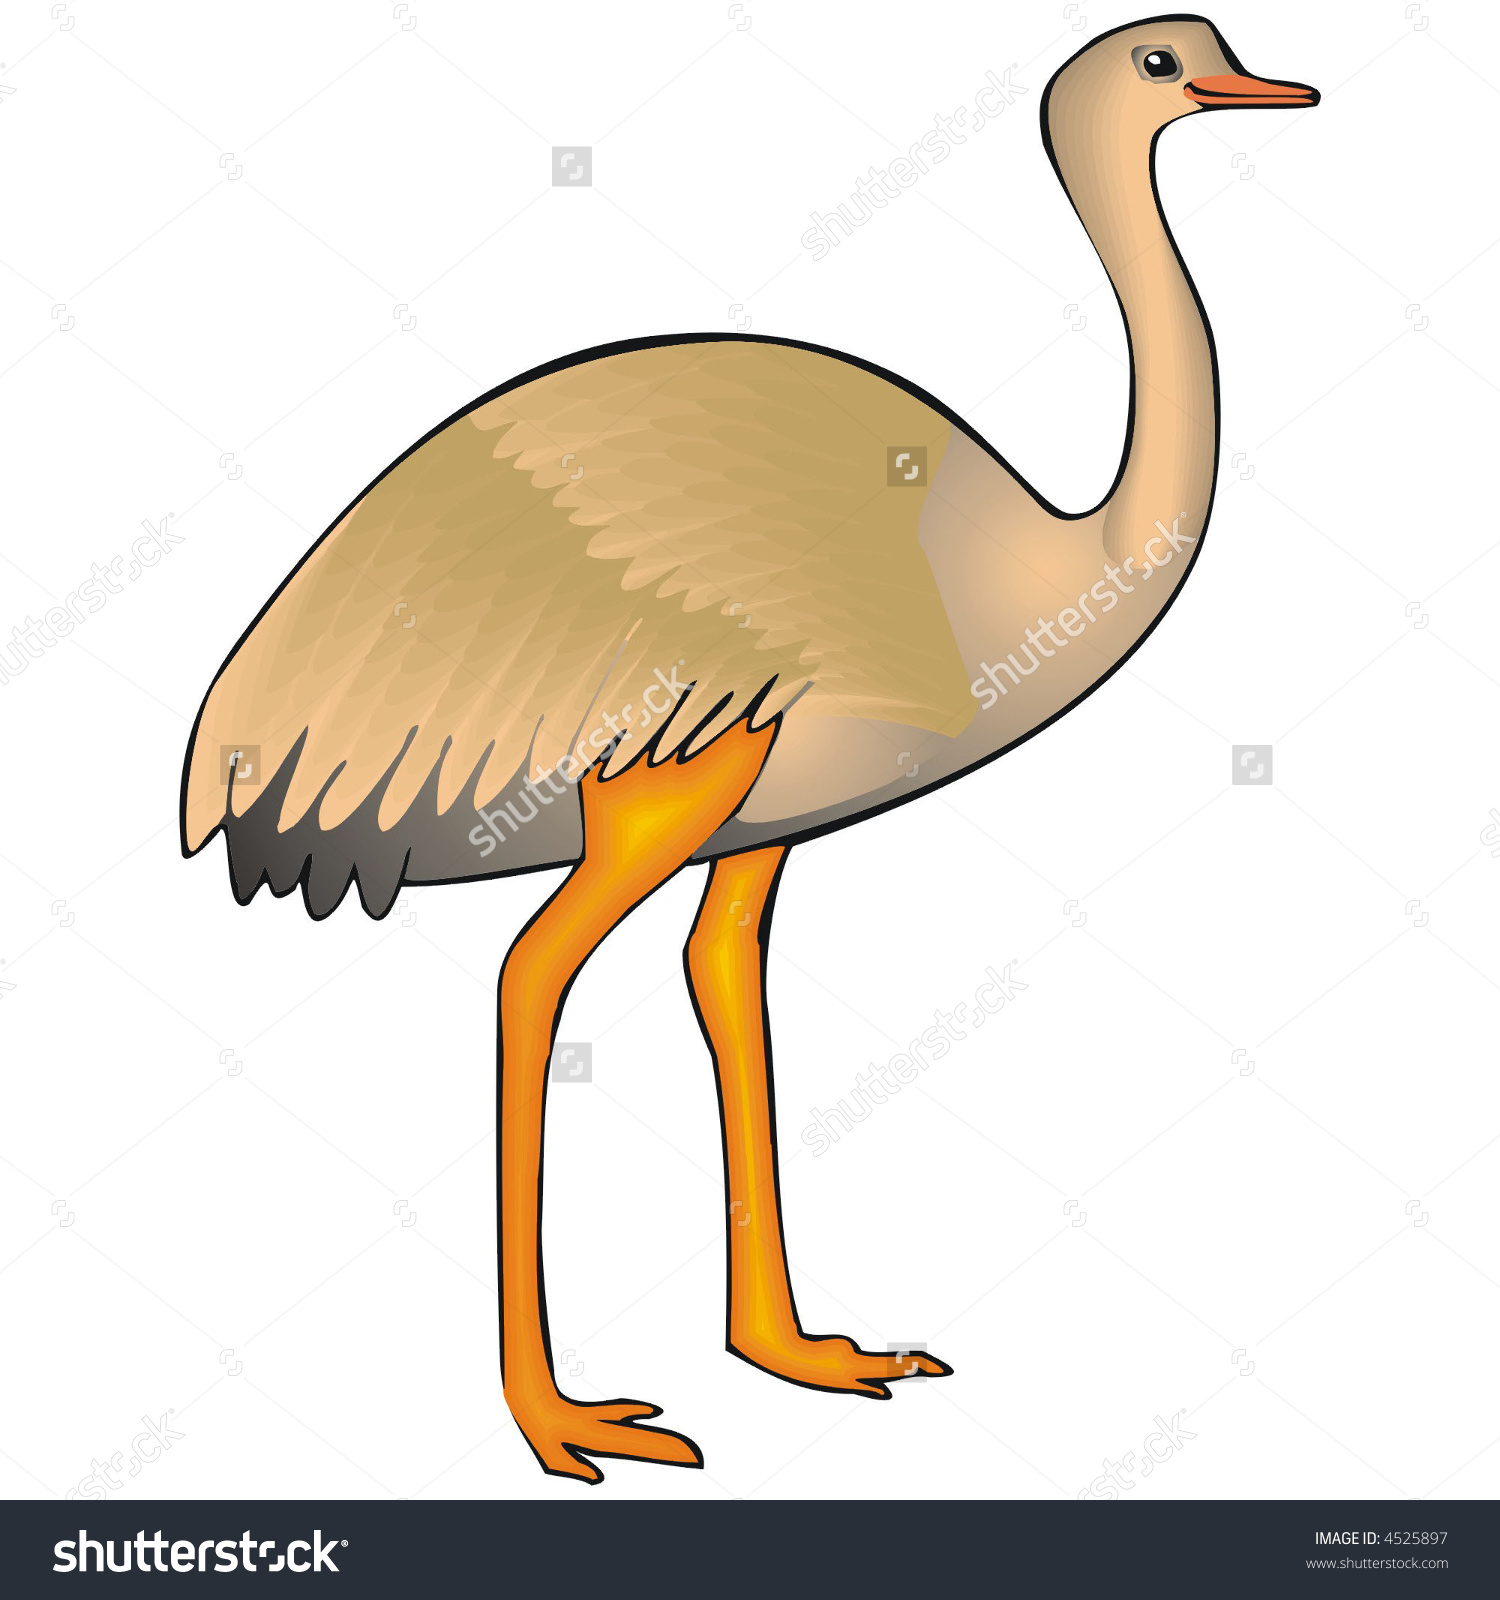 Art Illustration Big Bird Named Ema Stock Vector 4525897.